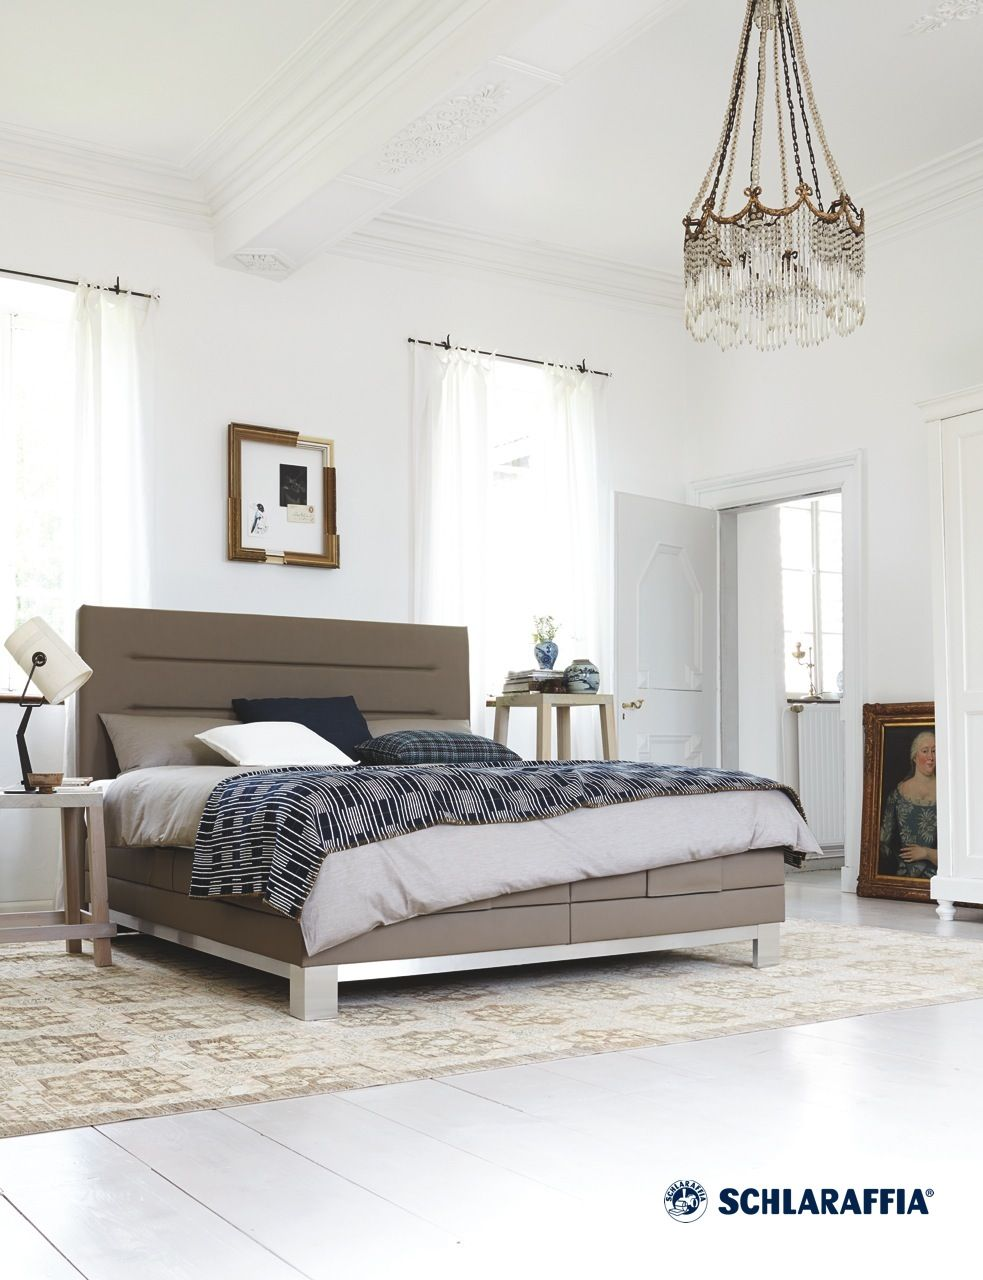 boxspring bett figaro von schlaraffia schlankes betthaupt mit markanten horizontalen akzent. Black Bedroom Furniture Sets. Home Design Ideas